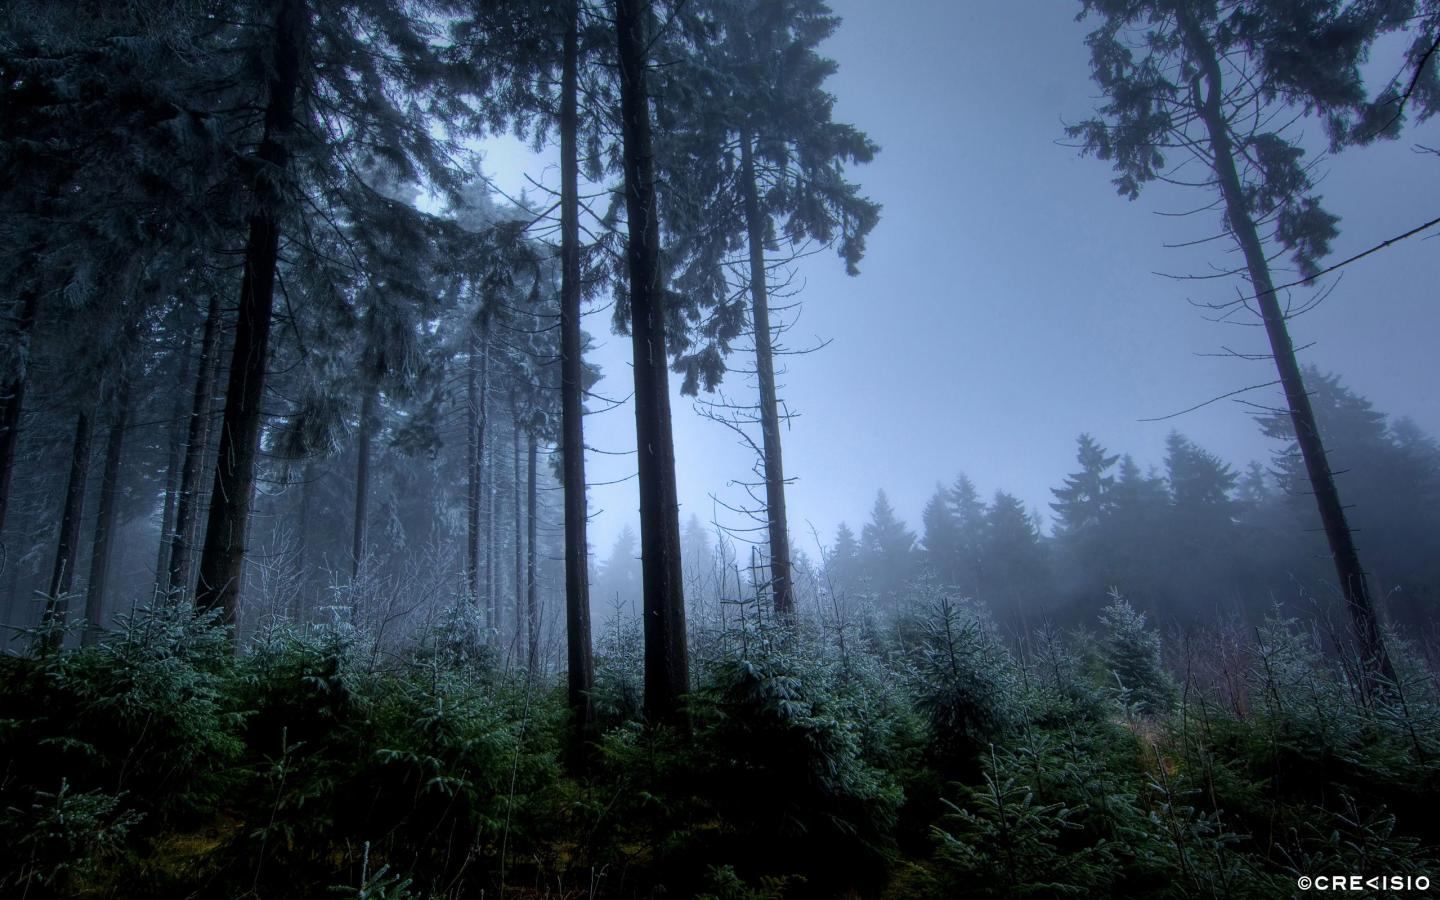 Feldberg Forest by Crevisio